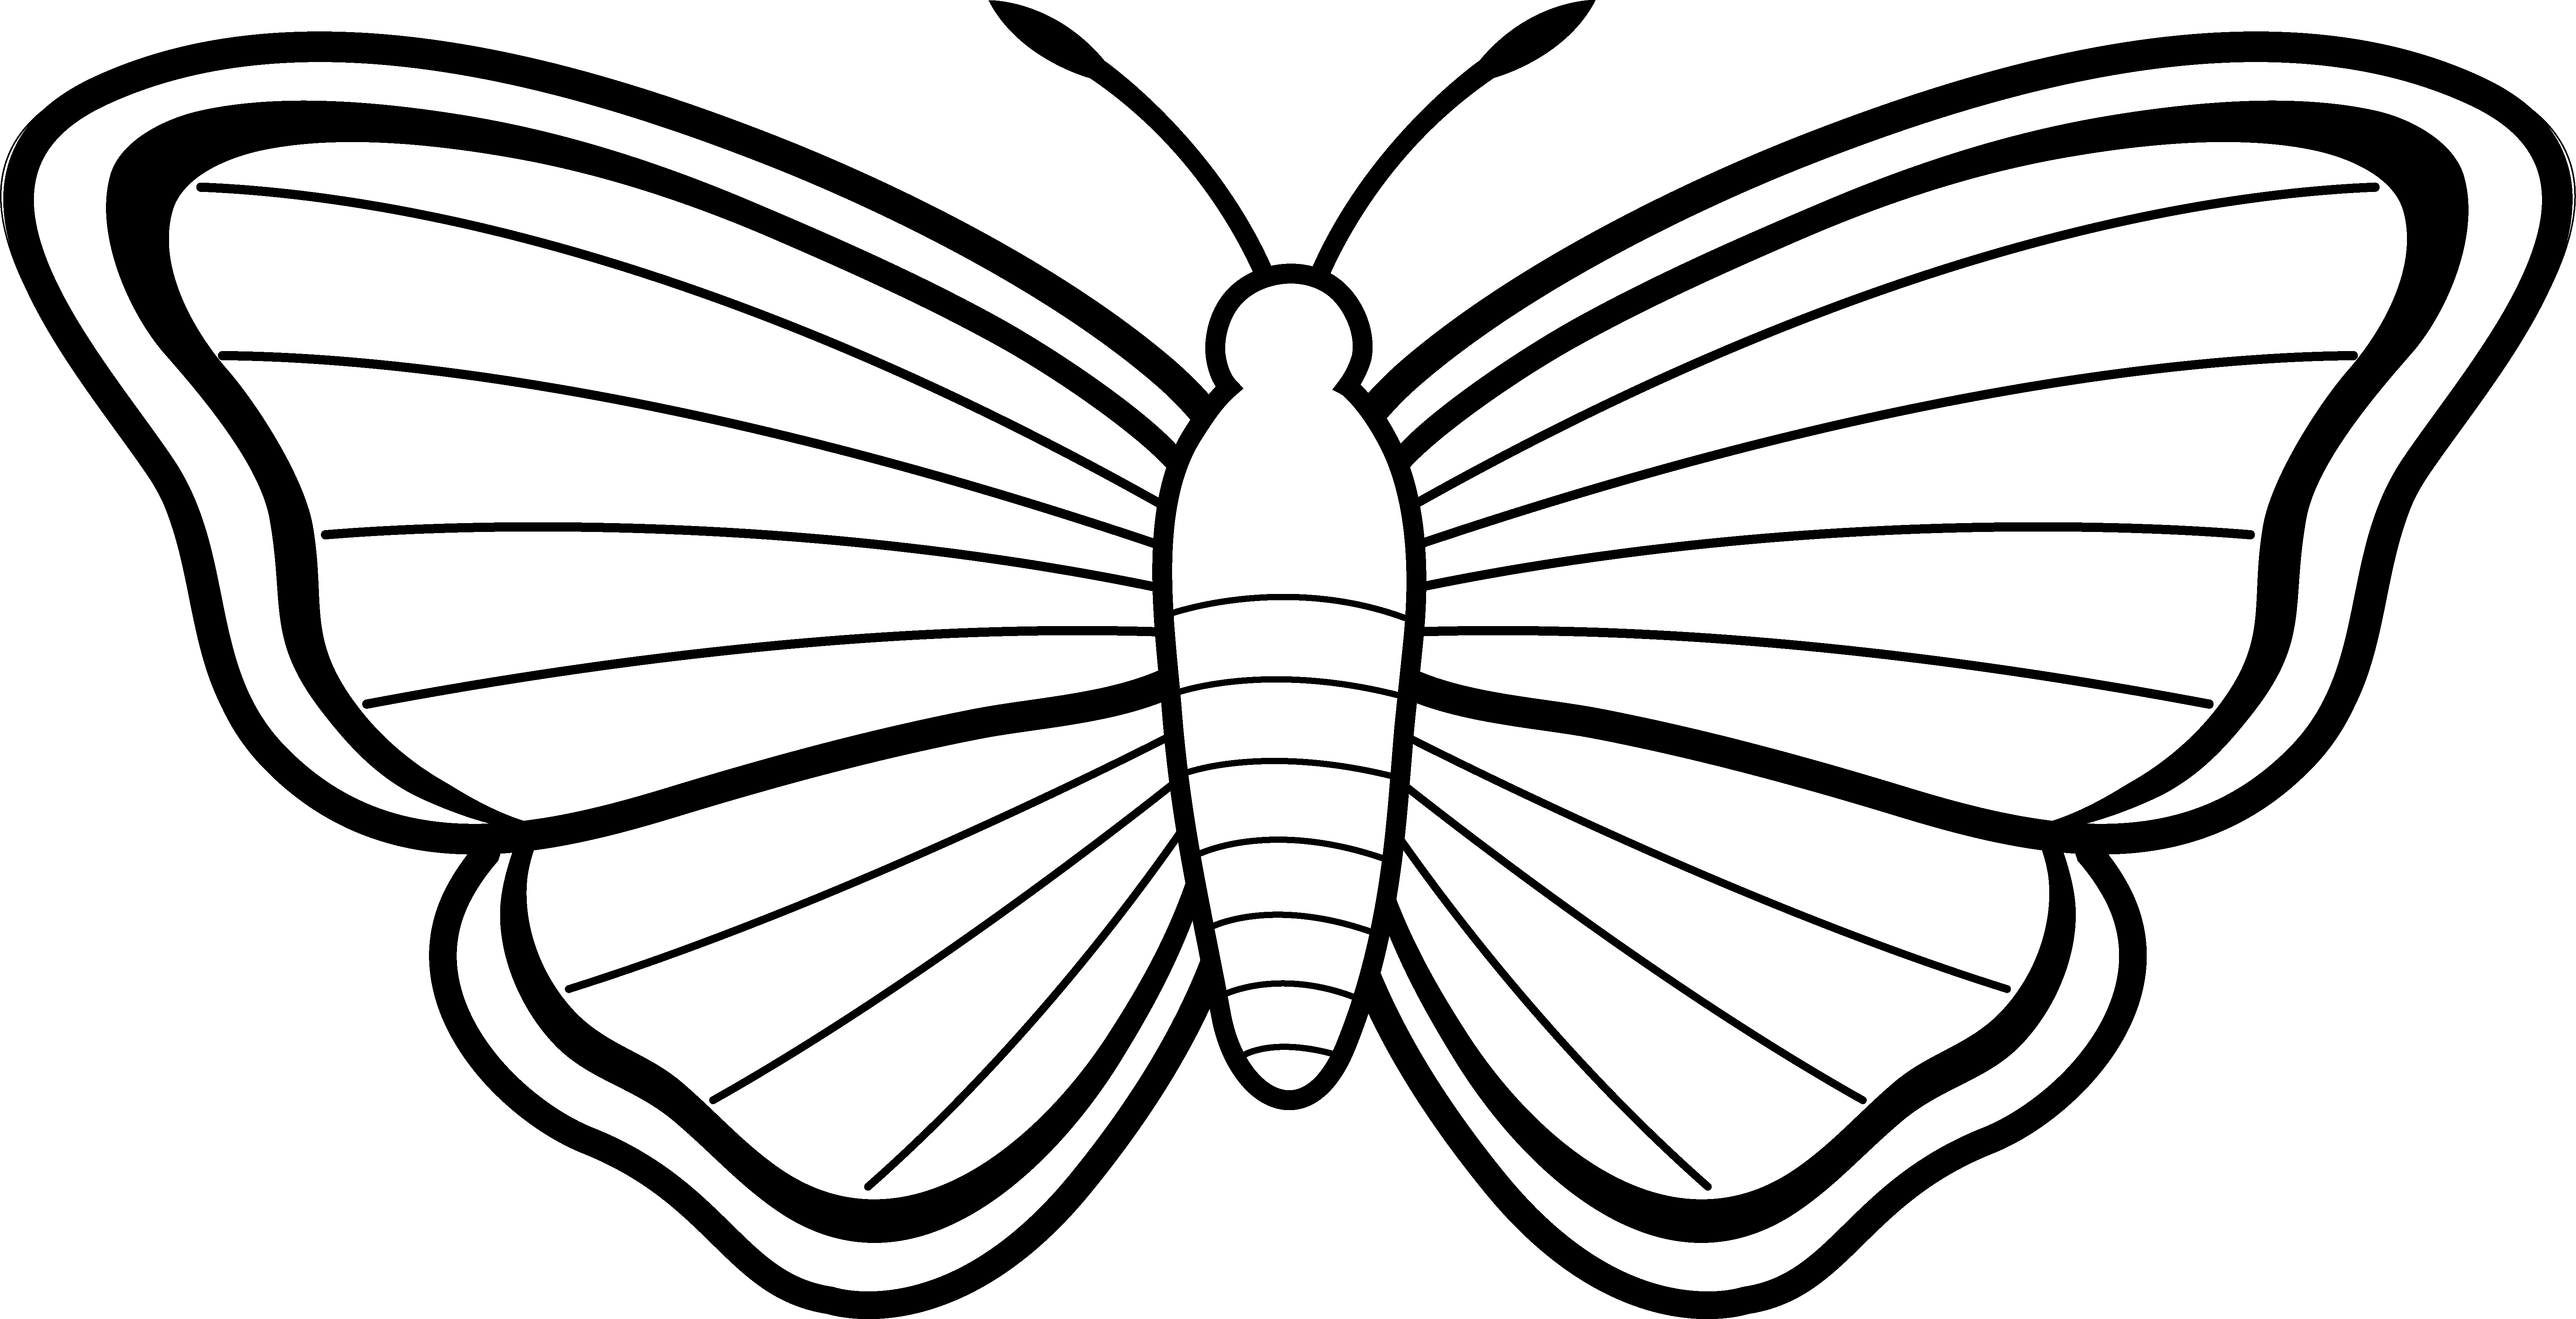 6978x3573 Monarch Butterfly Clip Art Black And White Holiday Fond